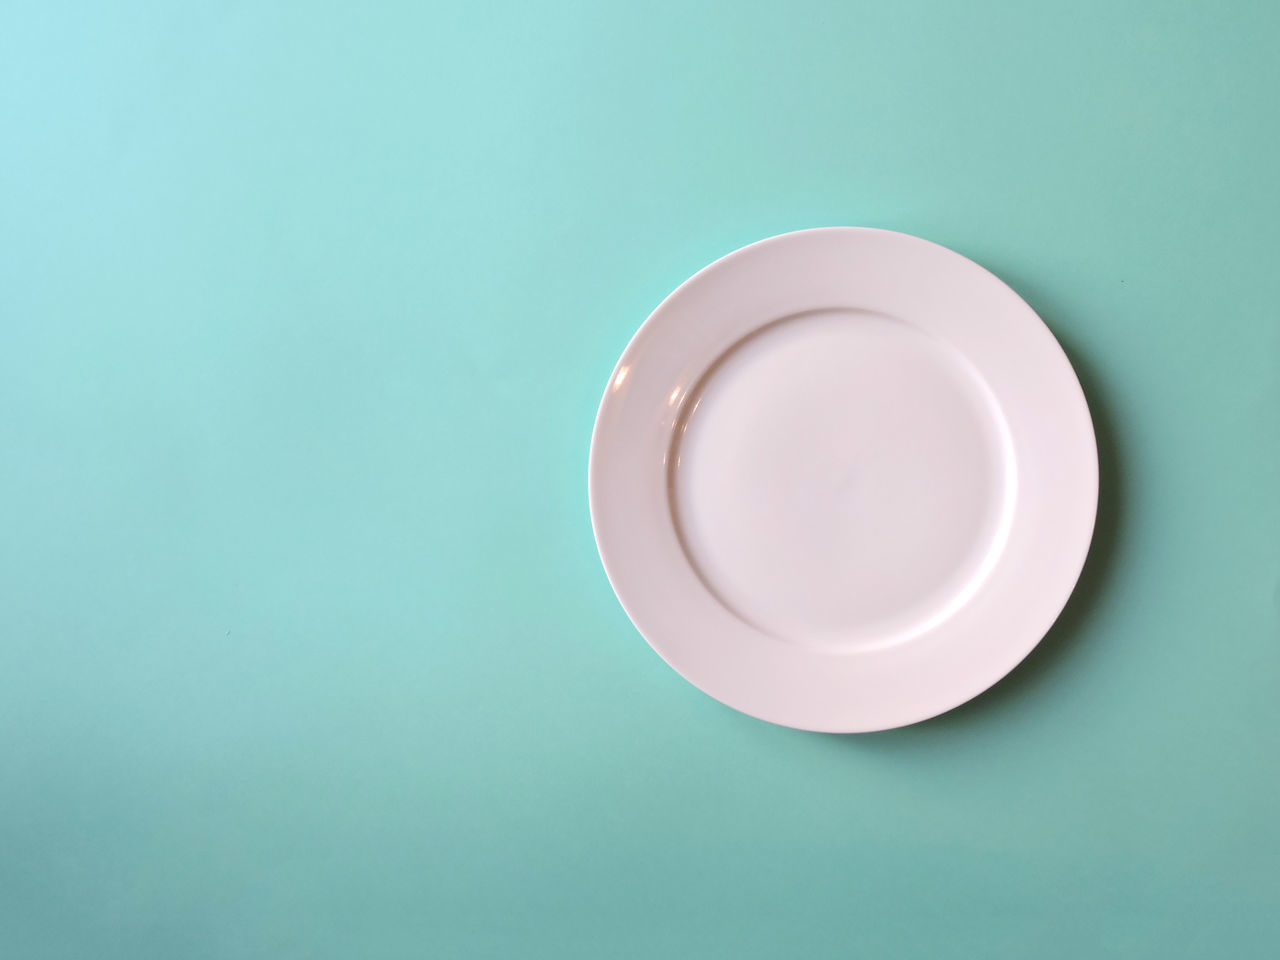 Above View Blue Background Cutlery Dinner Plate Fork Knife Minimal Plate Studio White Plate